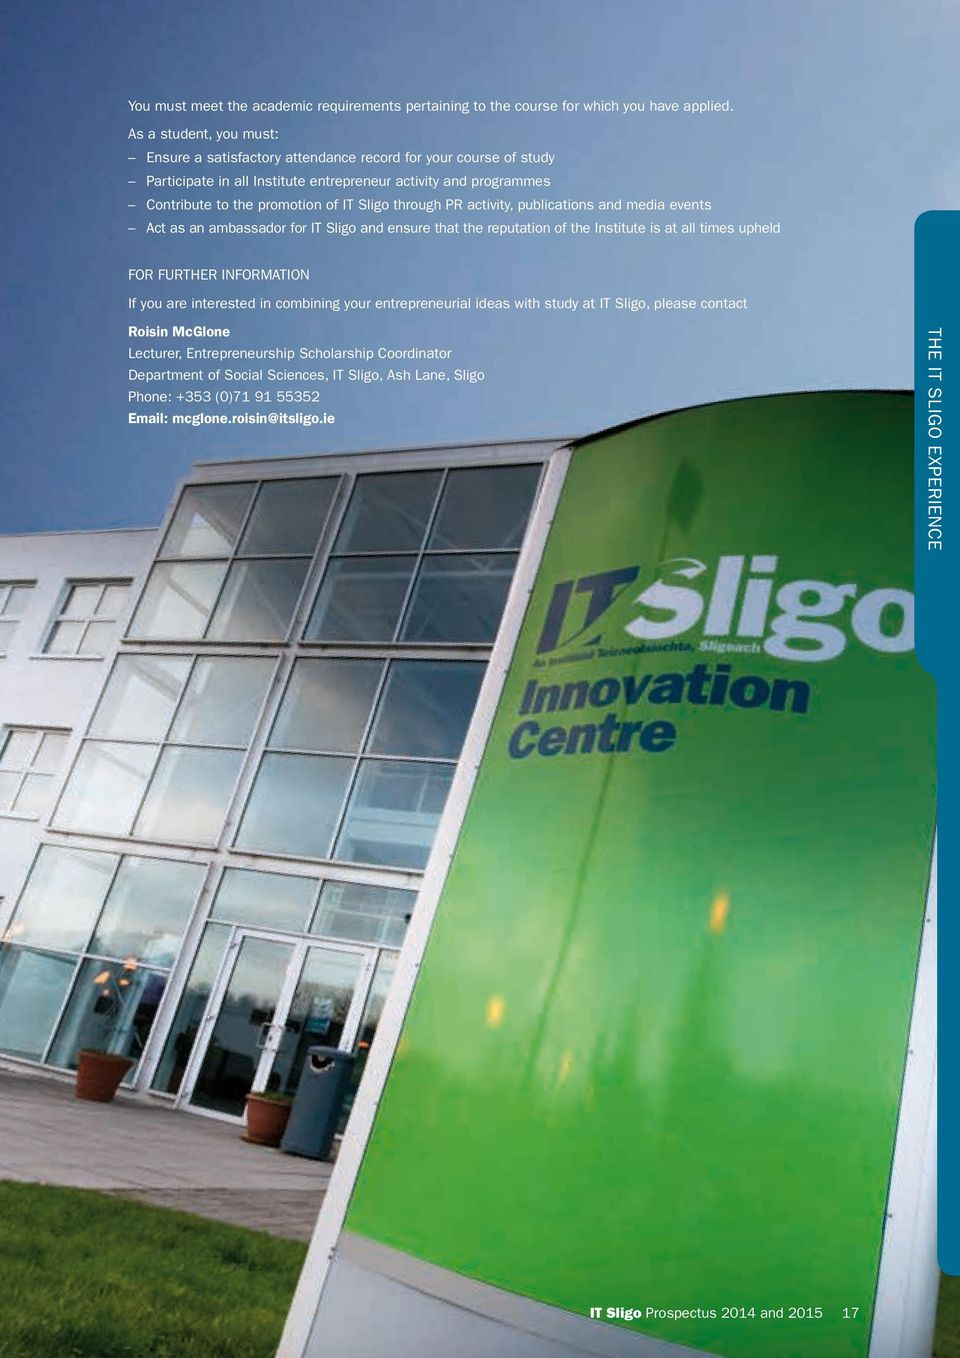 through PR activity, publications and media events Act as an ambassador for IT Sligo and ensure that the reputation of the Institute is at all times upheld FOR FURTHER INFORMATION If you are